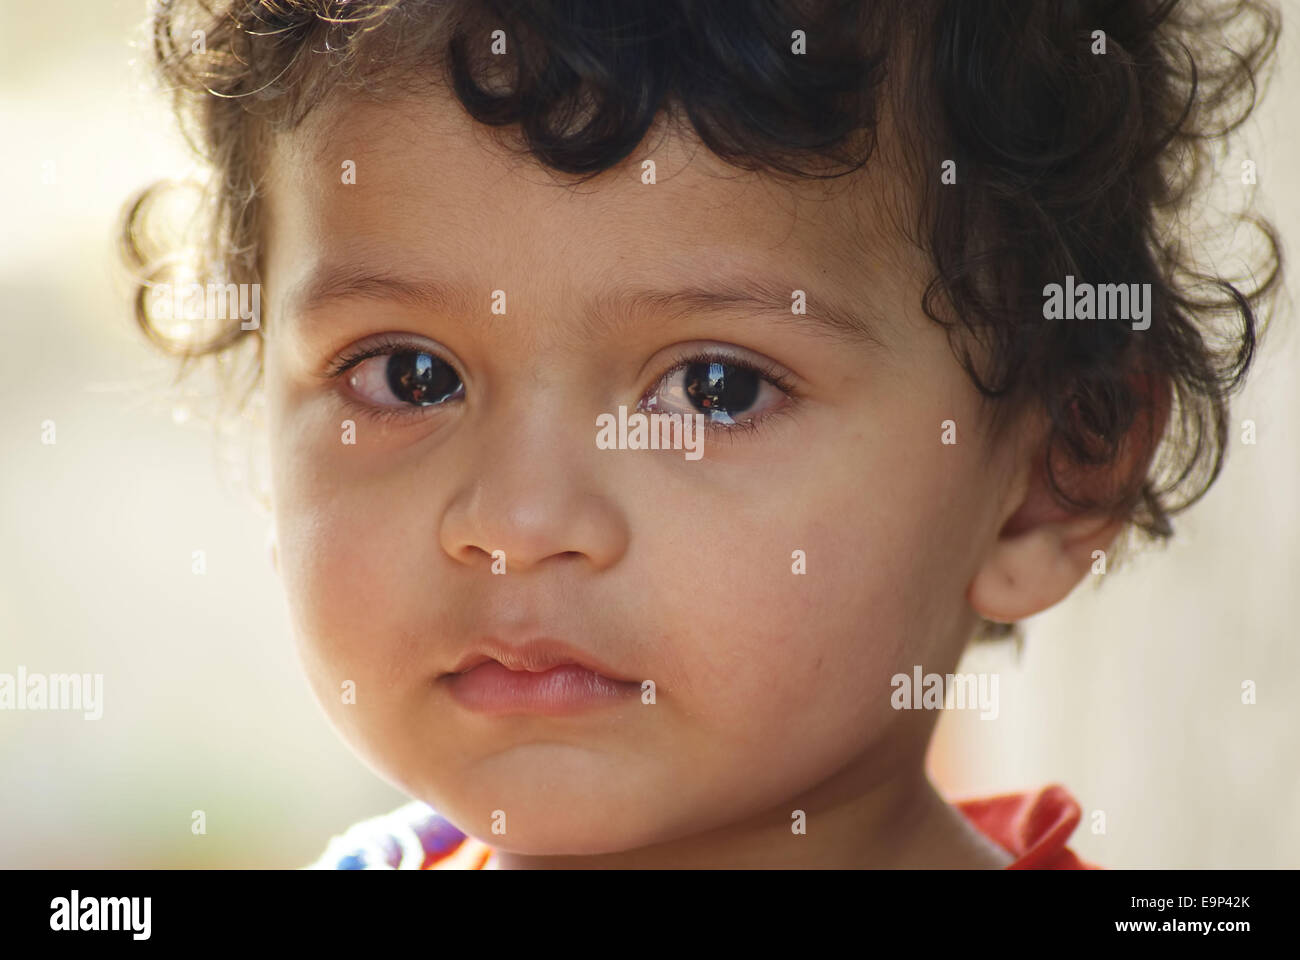 Sad Indian child with tears and curly hair looking at camera - Stock Image